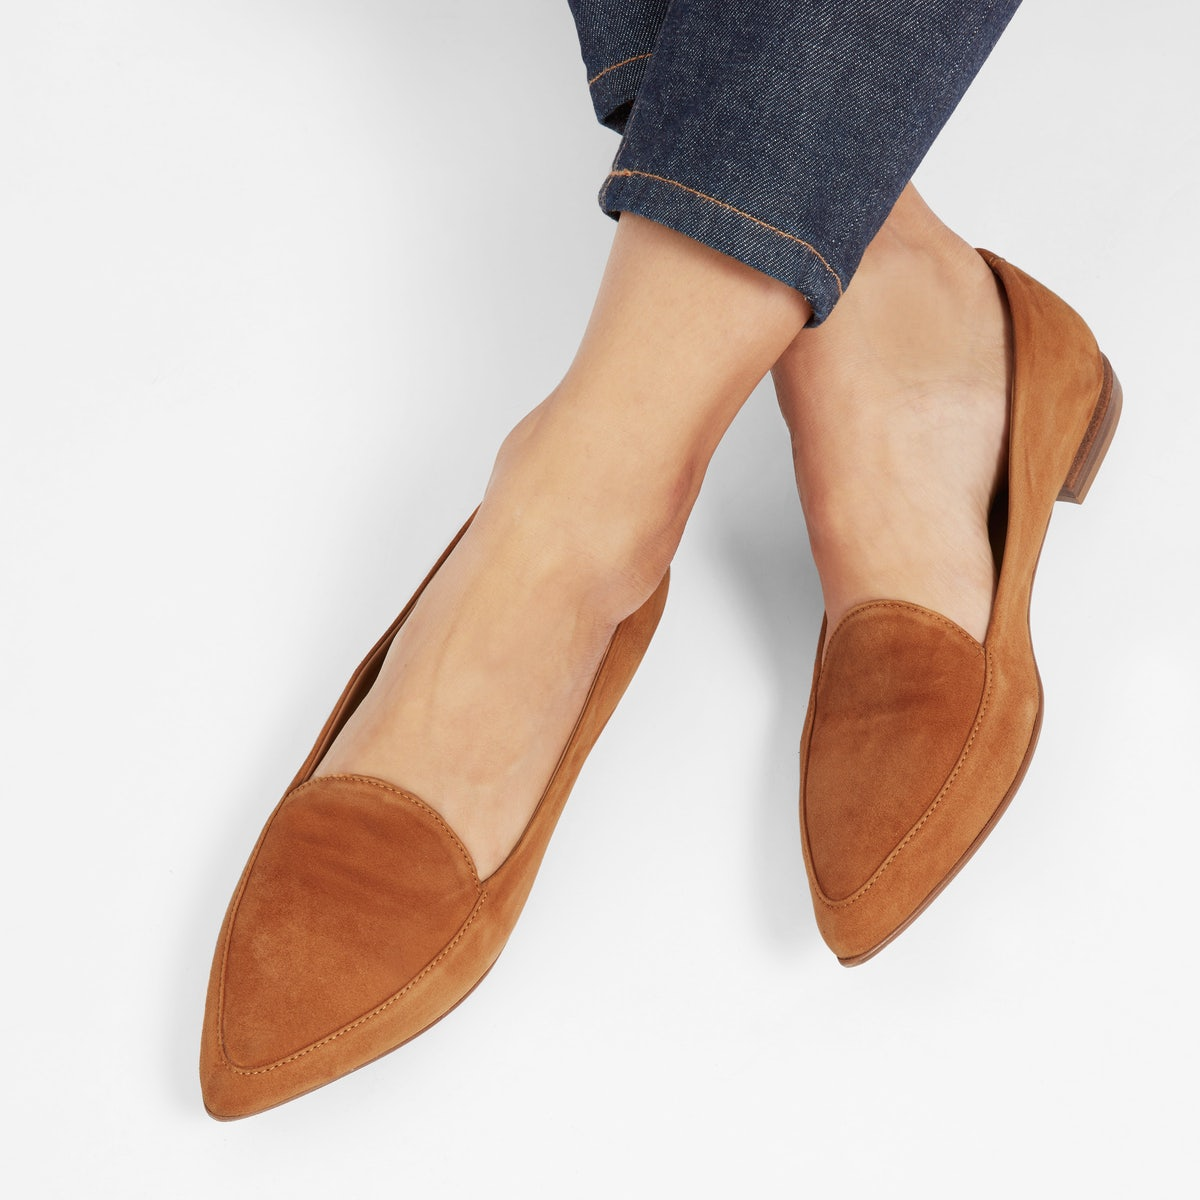 I Really Wanted to Love Everlane's Modern Point Flat